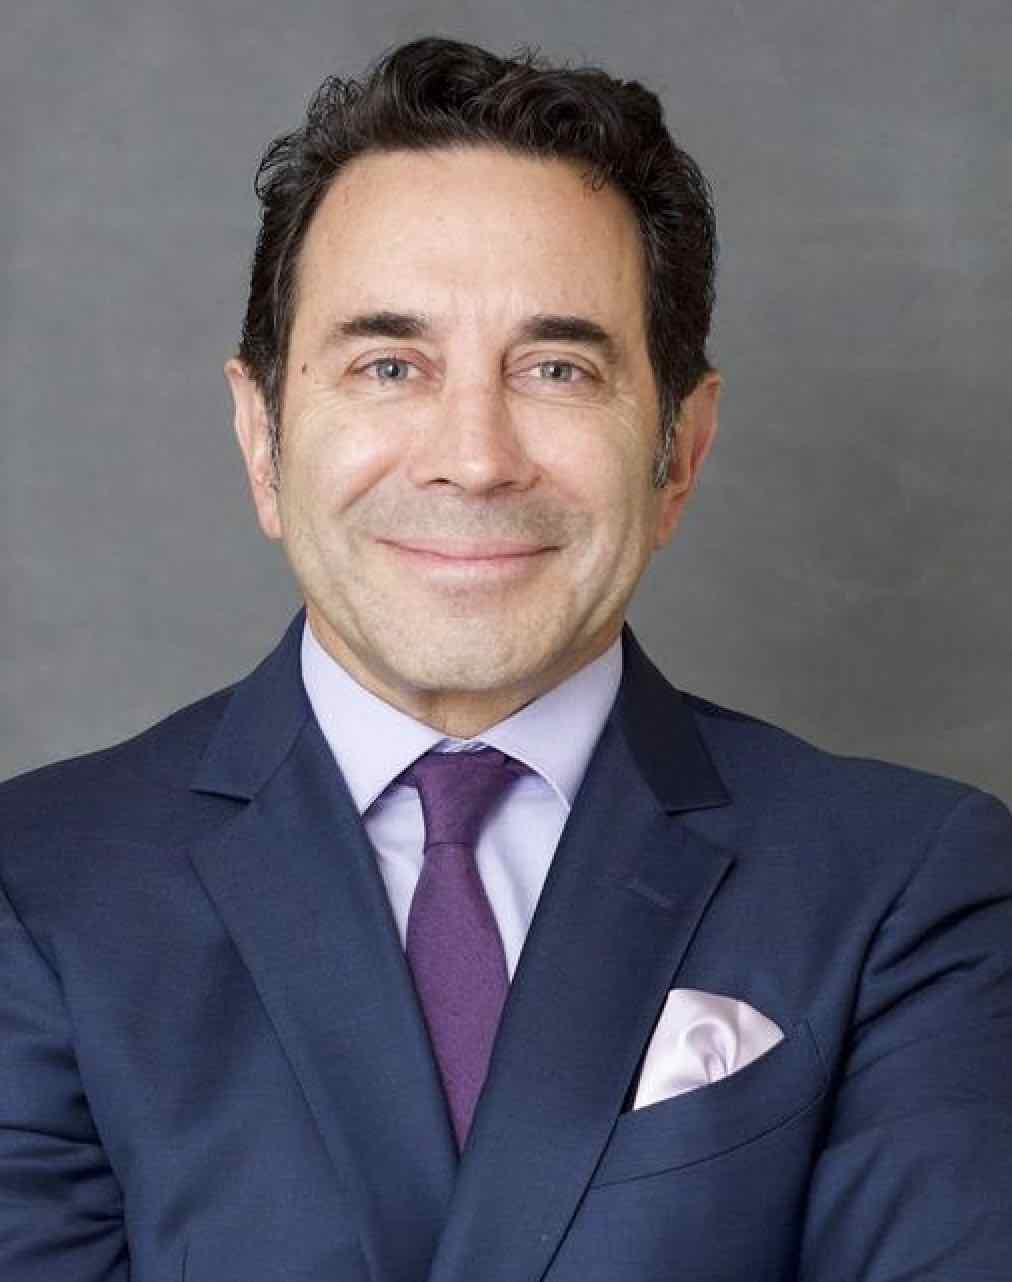 Paul Nassif net worth